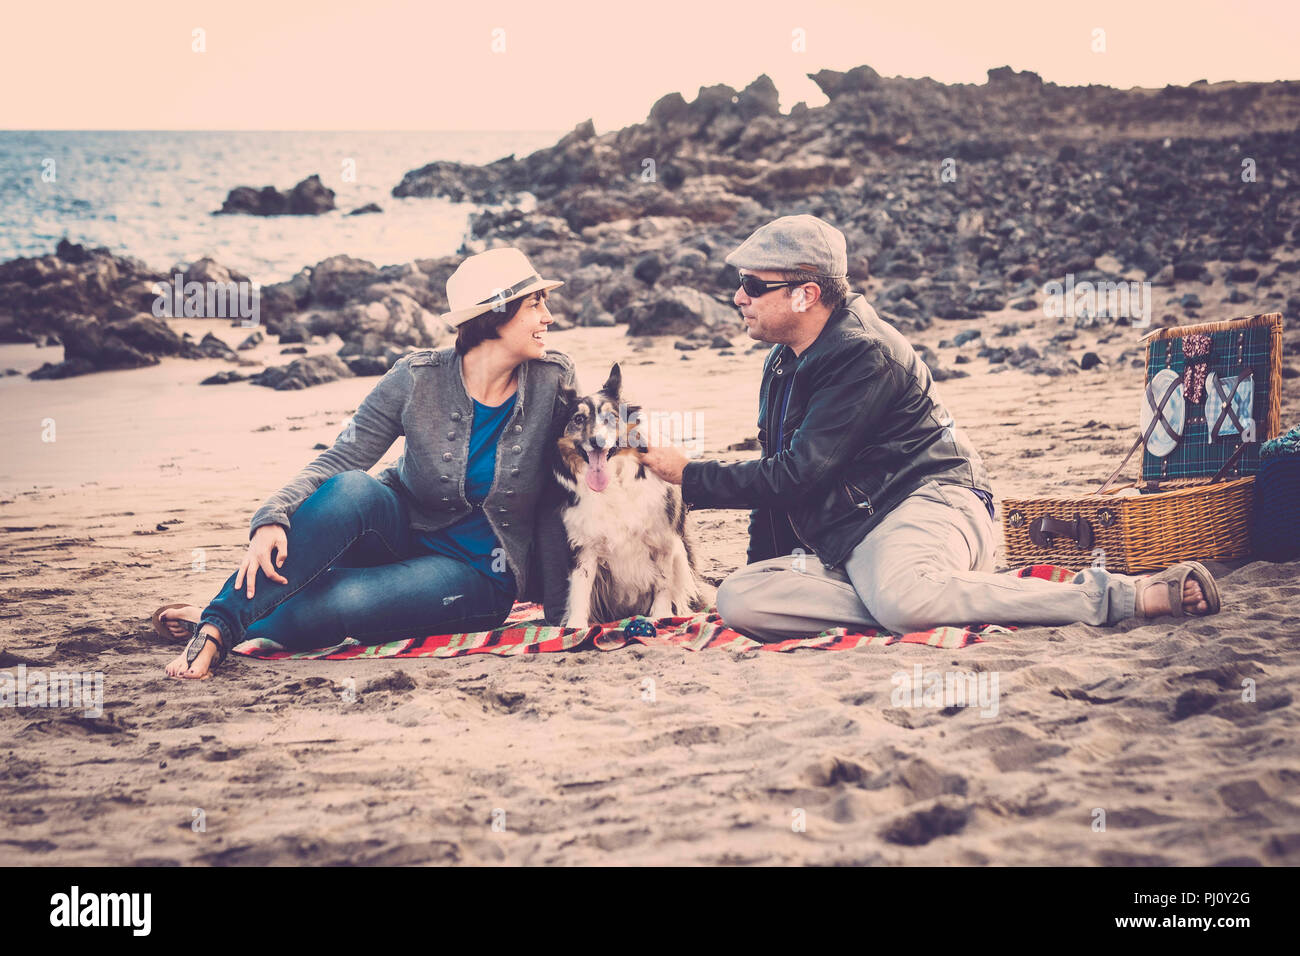 nice group of dog, man and woman young people having fun together at the beach doing picnic and enjoying the outdoor leisure activity. fashion people  - Stock Image